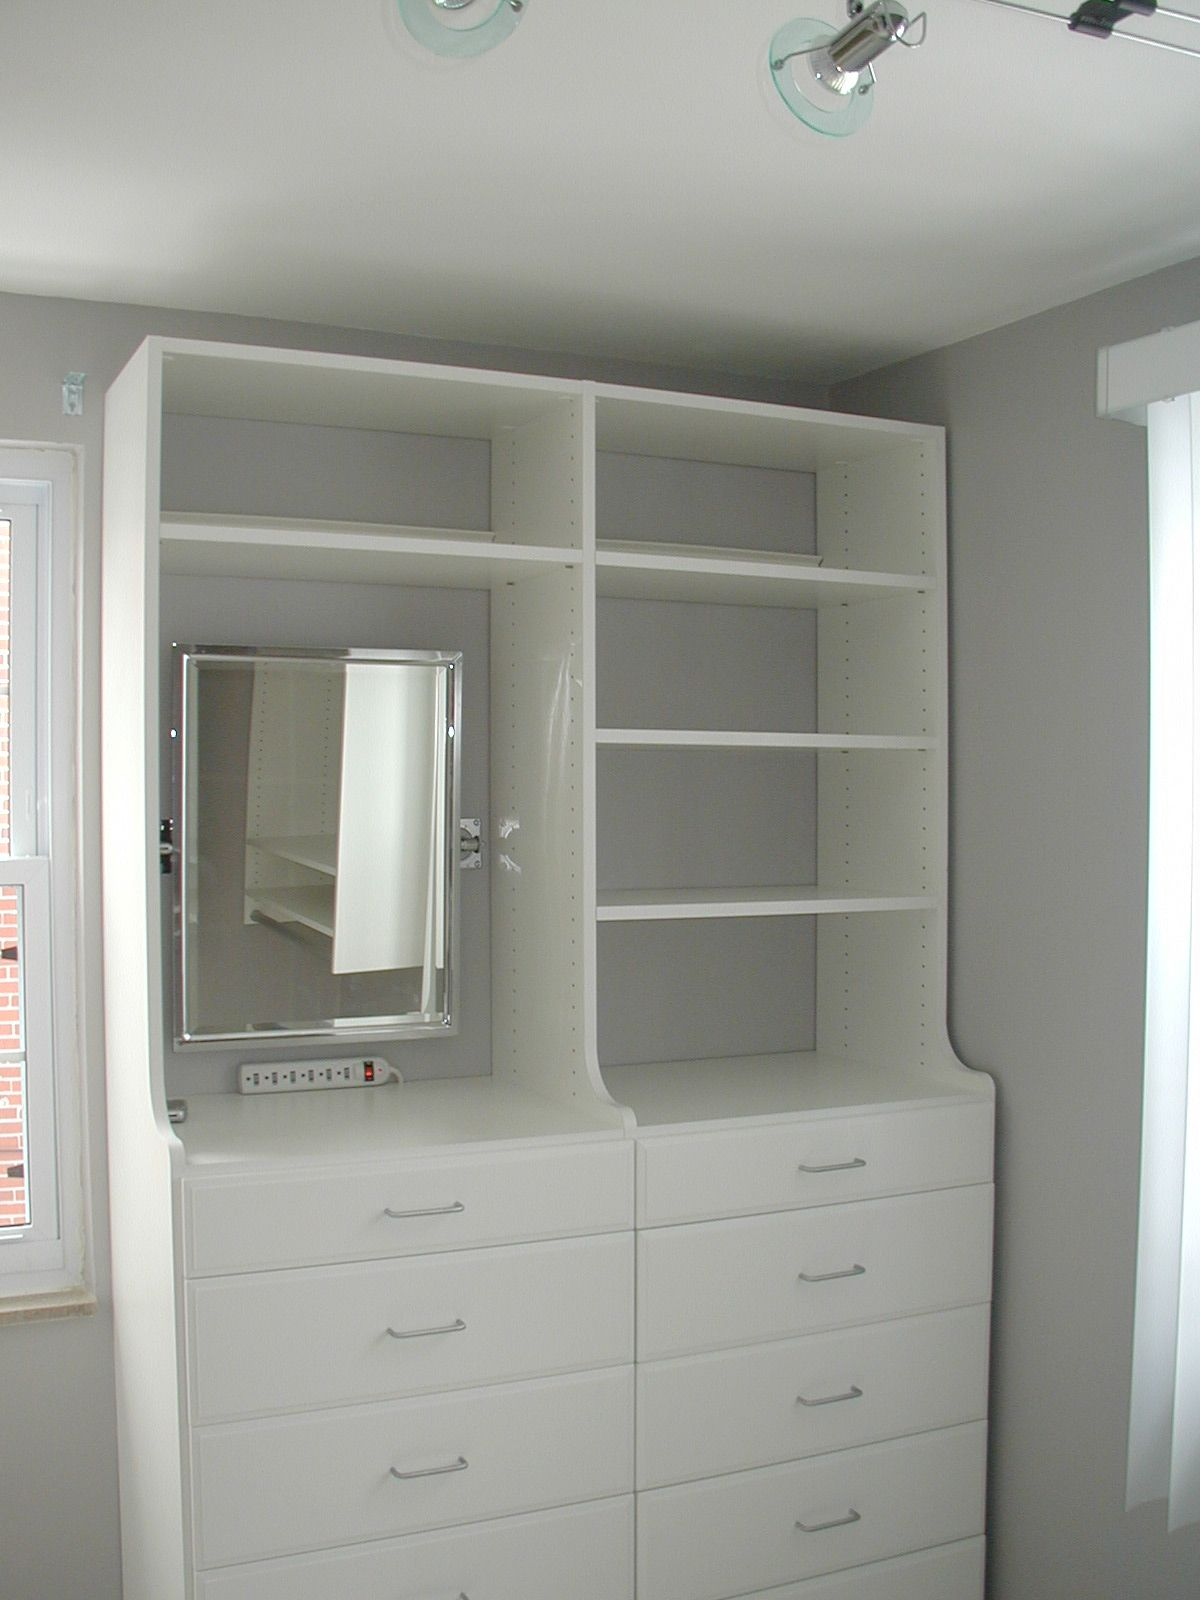 This client's walk in closet has two hutch units.  The drawers are 19 inches deep and the vertical side panels elegantly curve in so that the shelving above is 14 inches deep.  Tom also installed a vanity mirror and a power strip for our thrilled client.